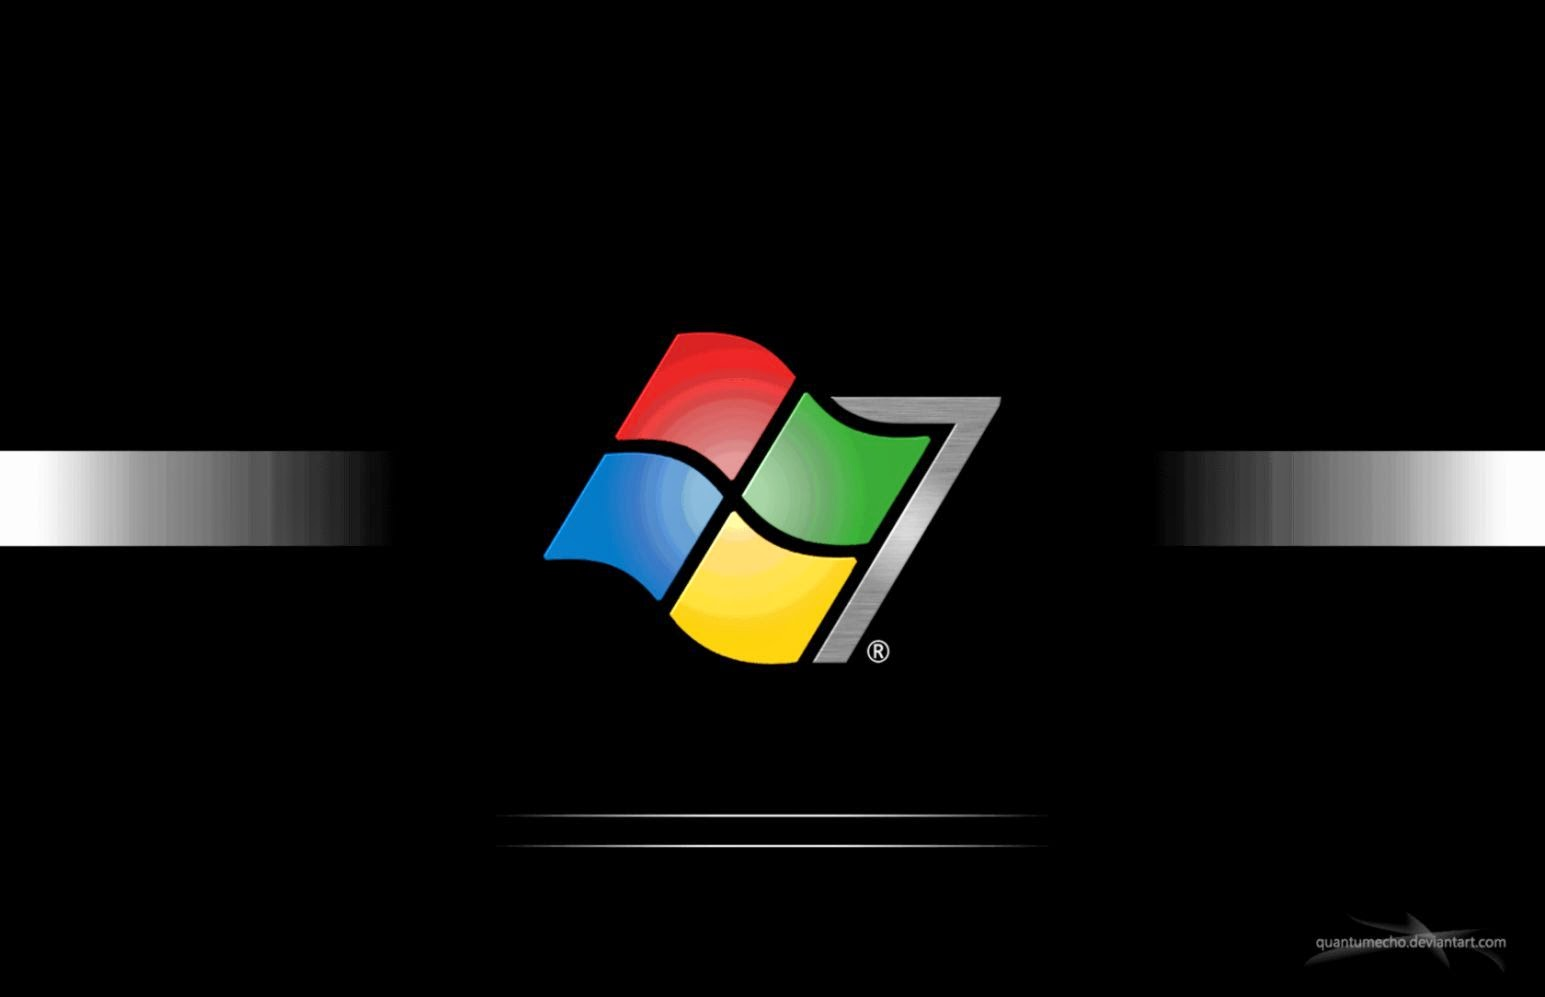 Gif Wallpapers Windows 7   Wallpaper Cave